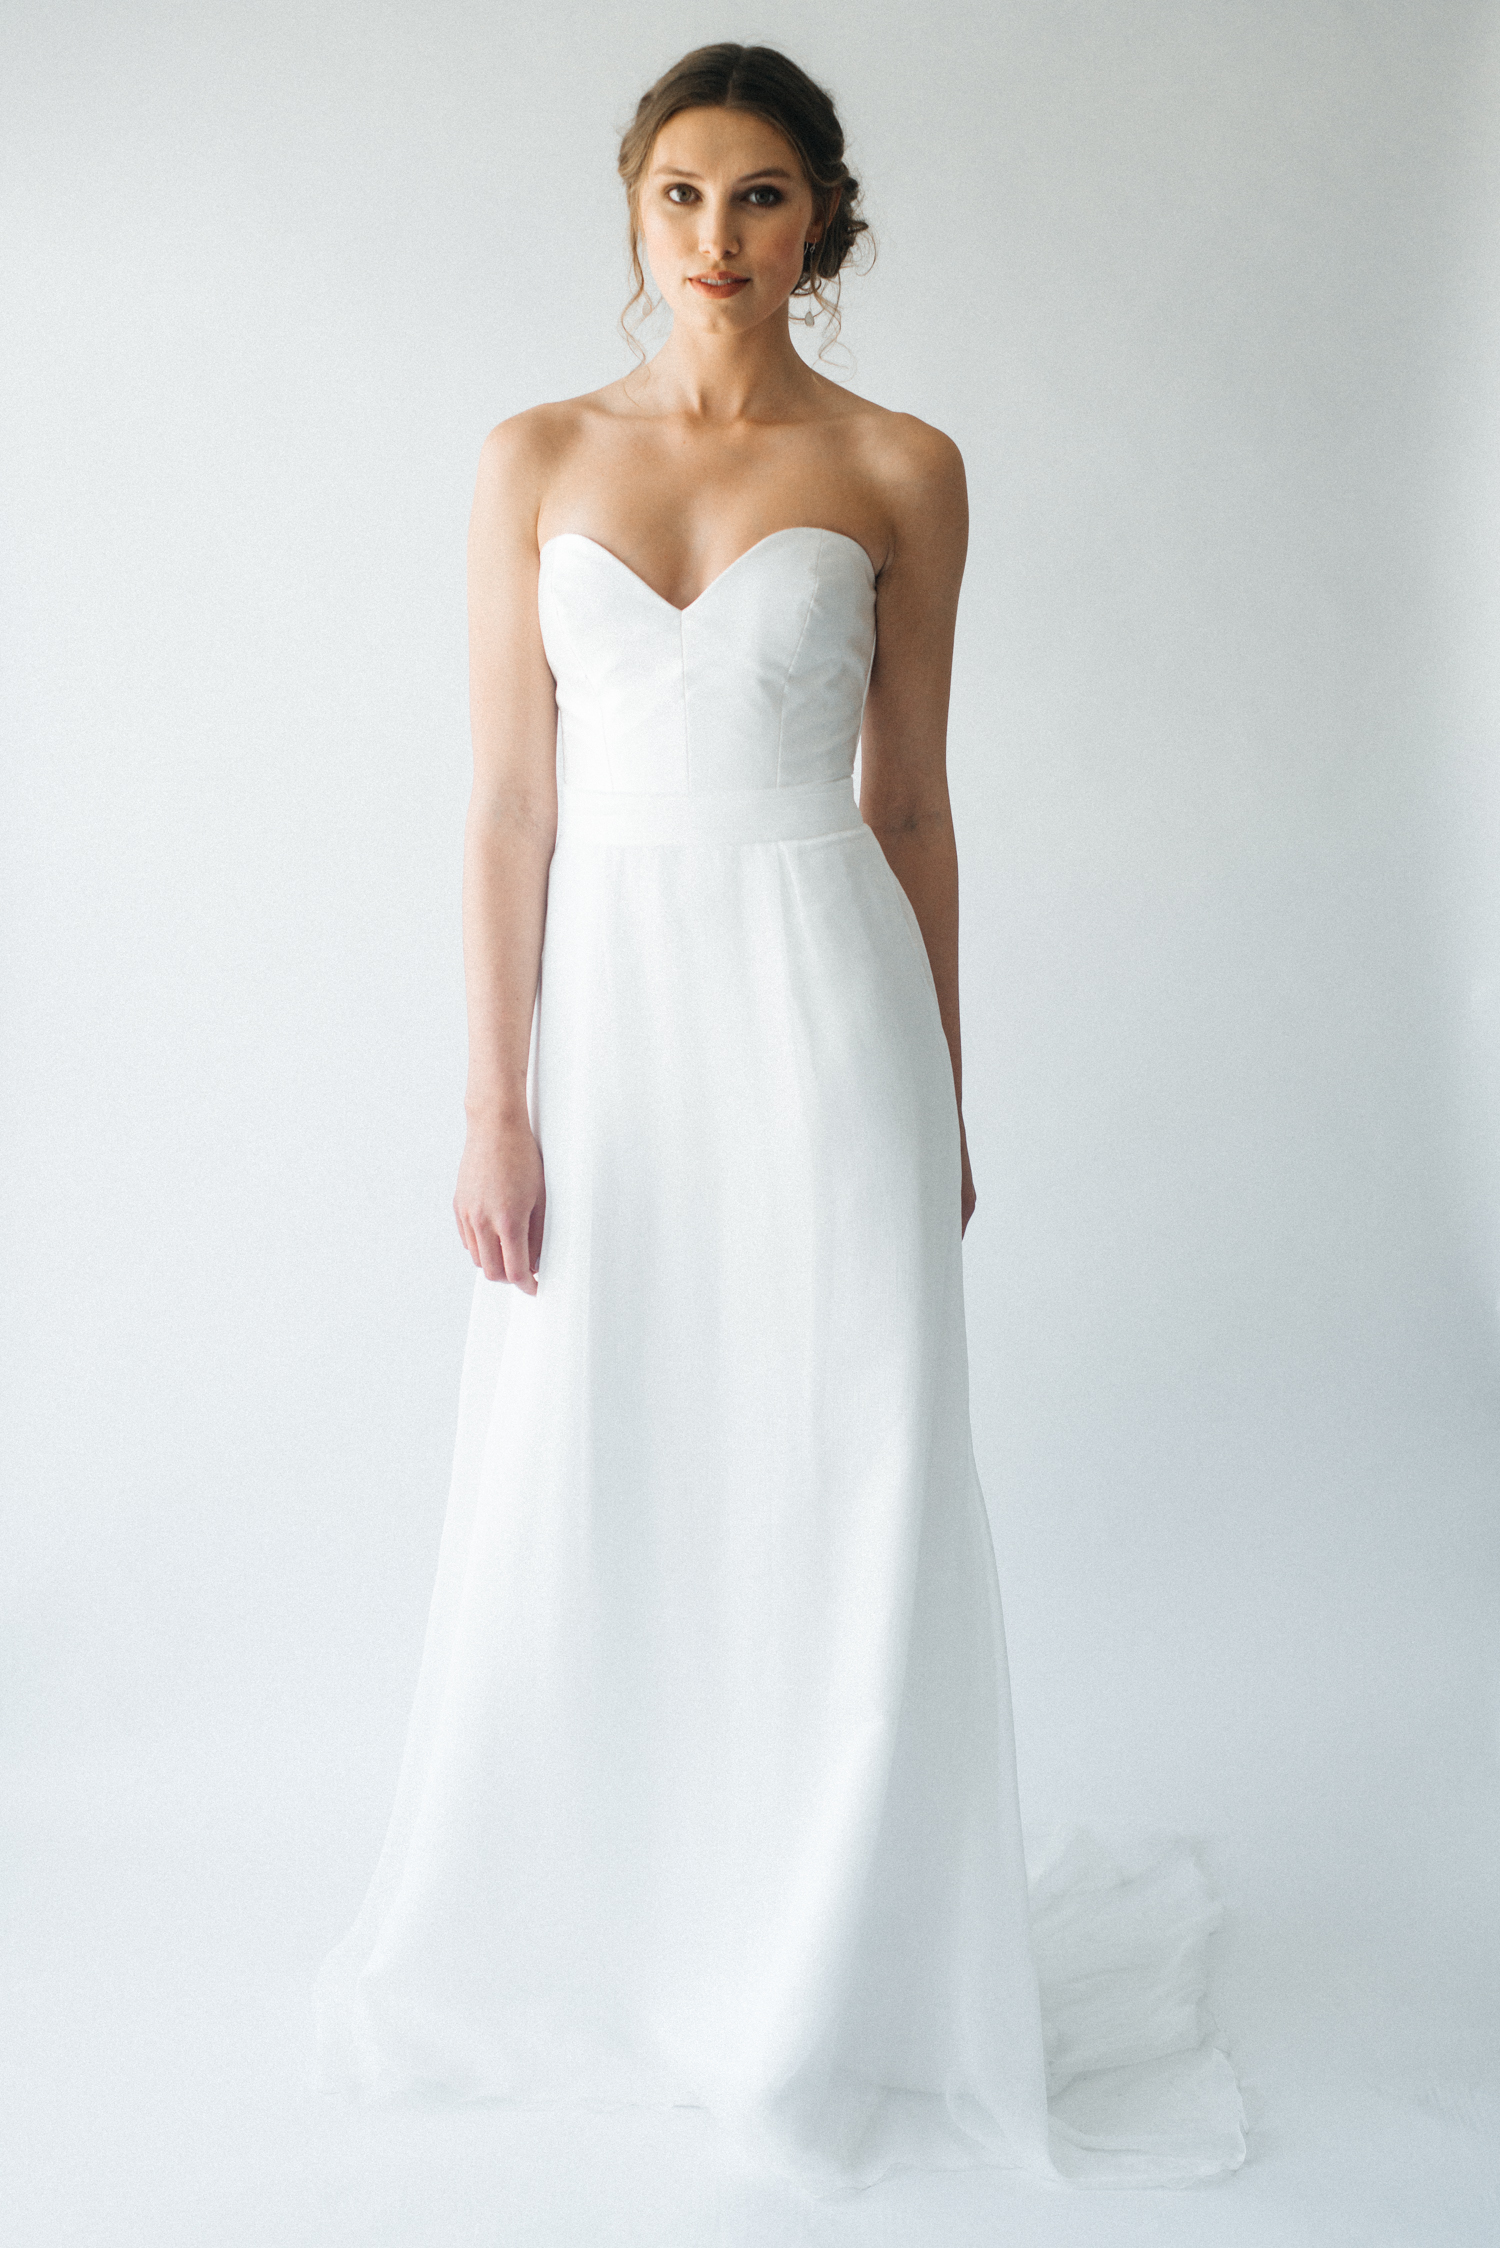 Gwith and Frosa Silk bridal separates